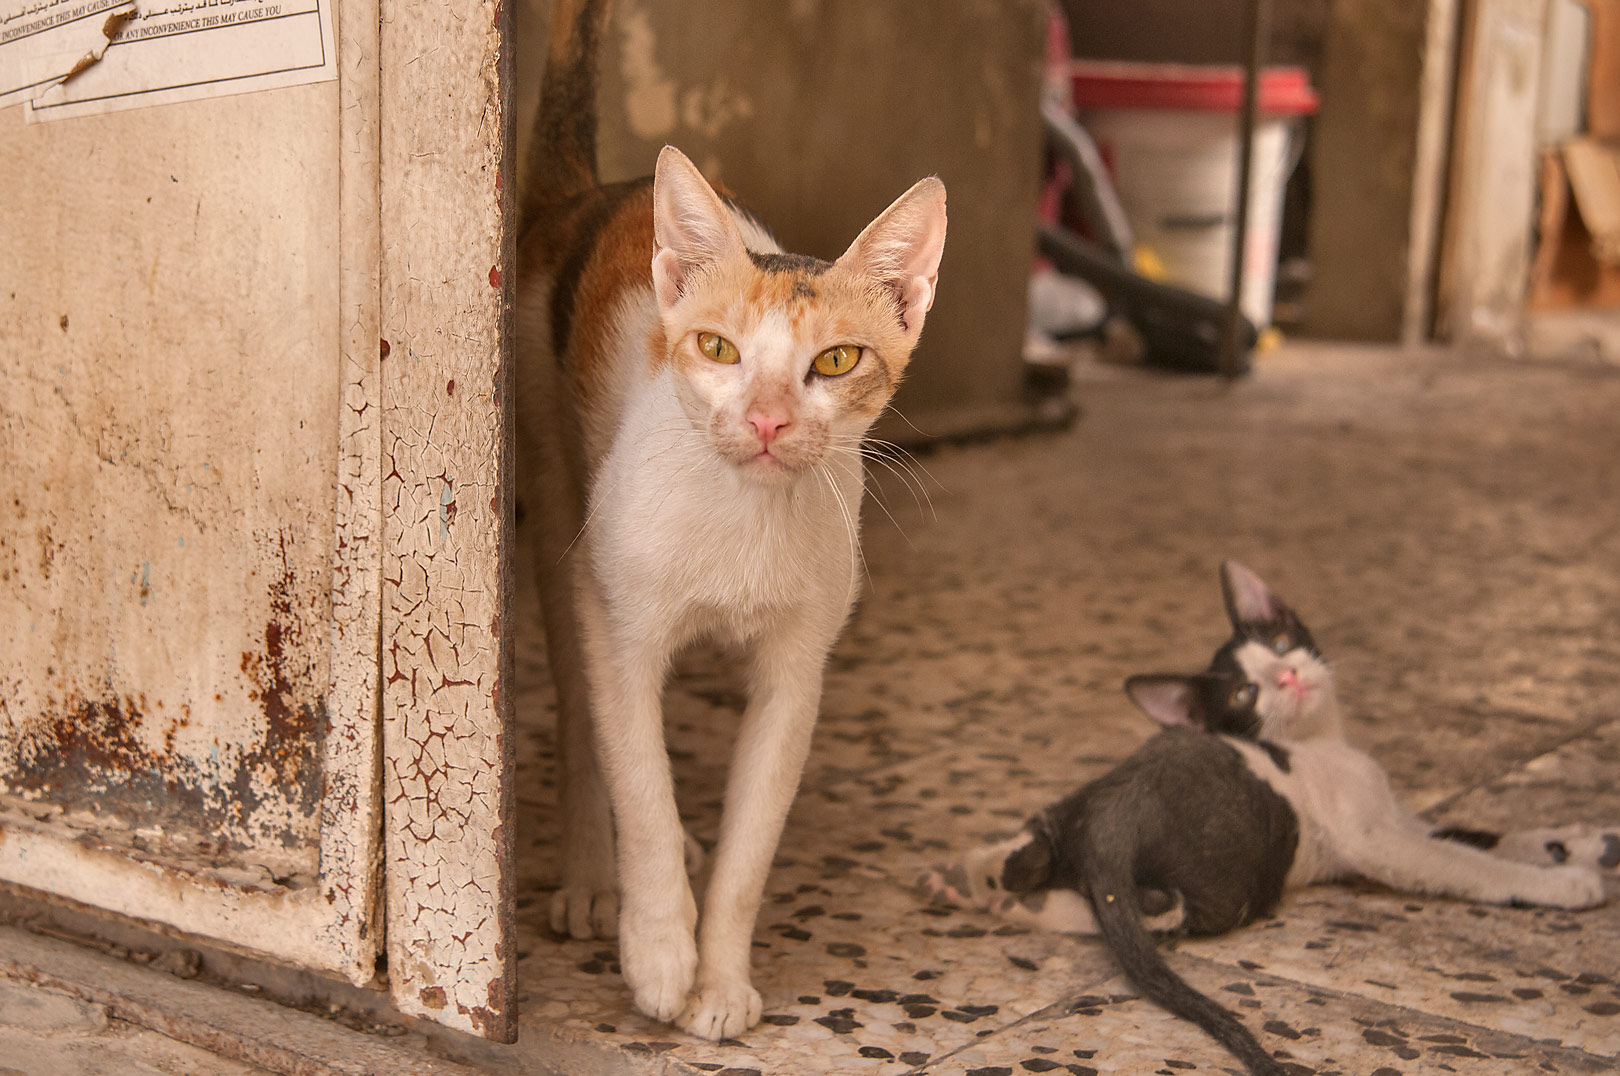 Family of cats in doorway at Al Mughira Bin Shuba...Al Doha Al Jadeeda area. Doha, Qatar